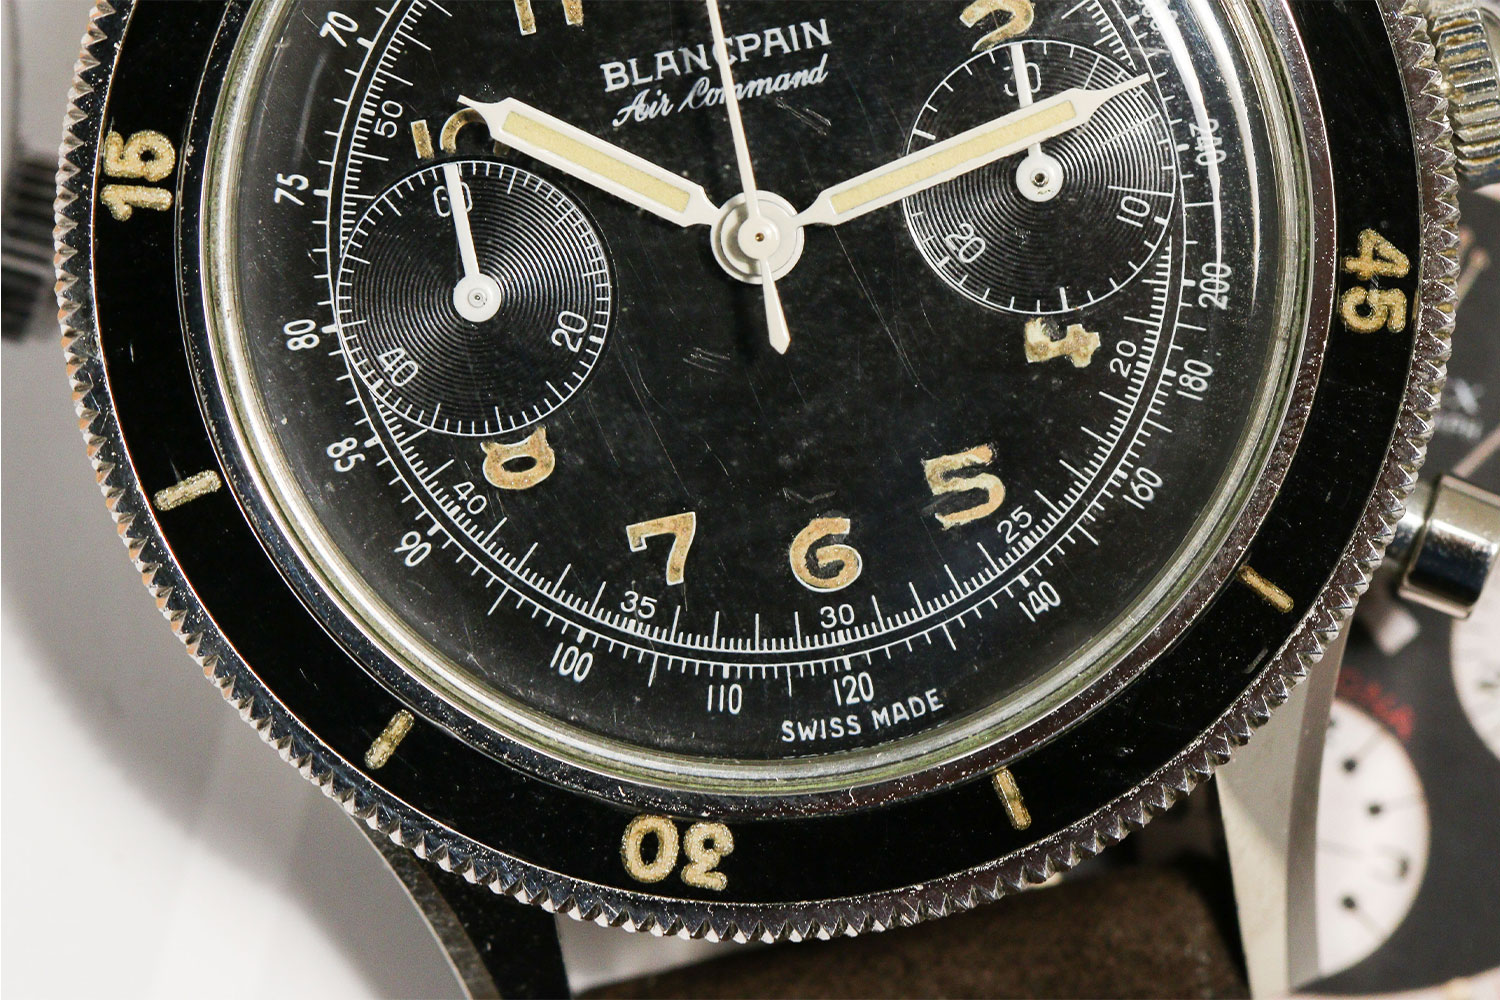 Lot 814 – Blancpain Air Command